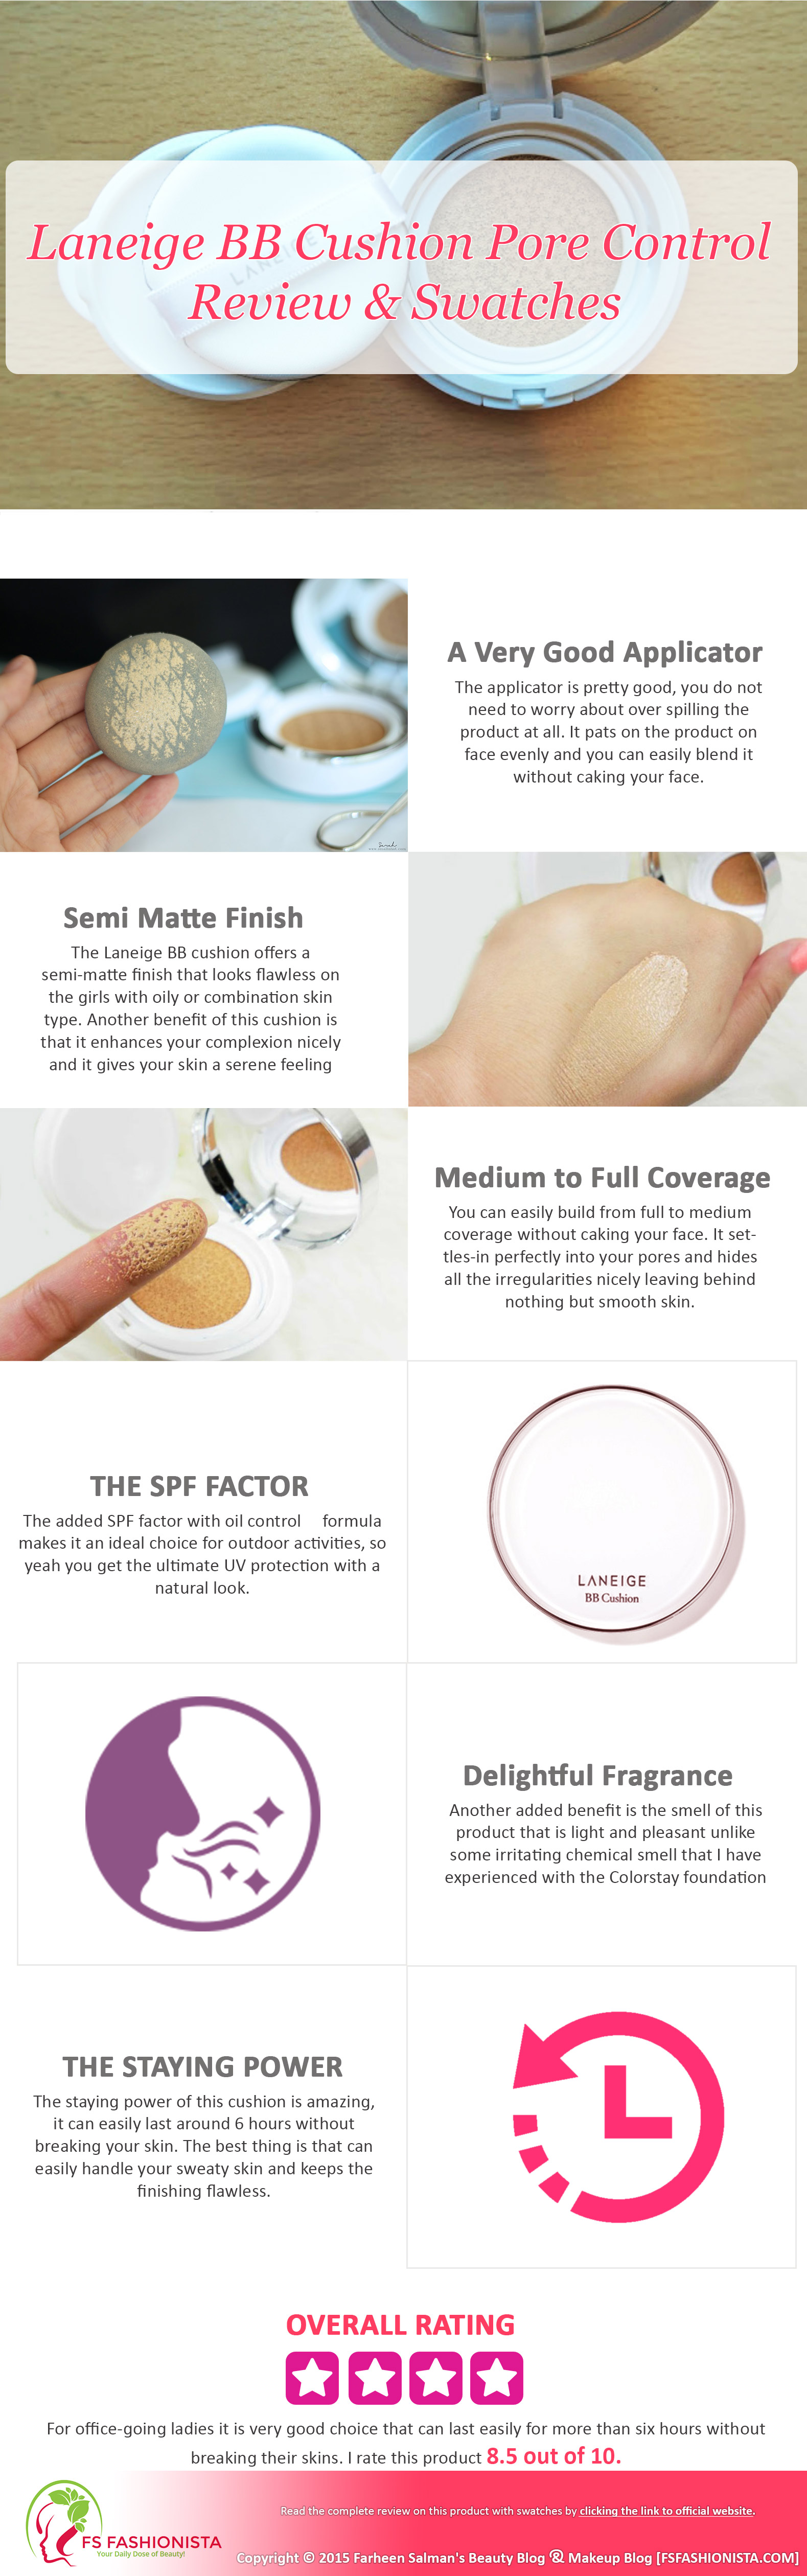 Laneige Bb Cushion Pore Control Review Swatches Laneige Bb